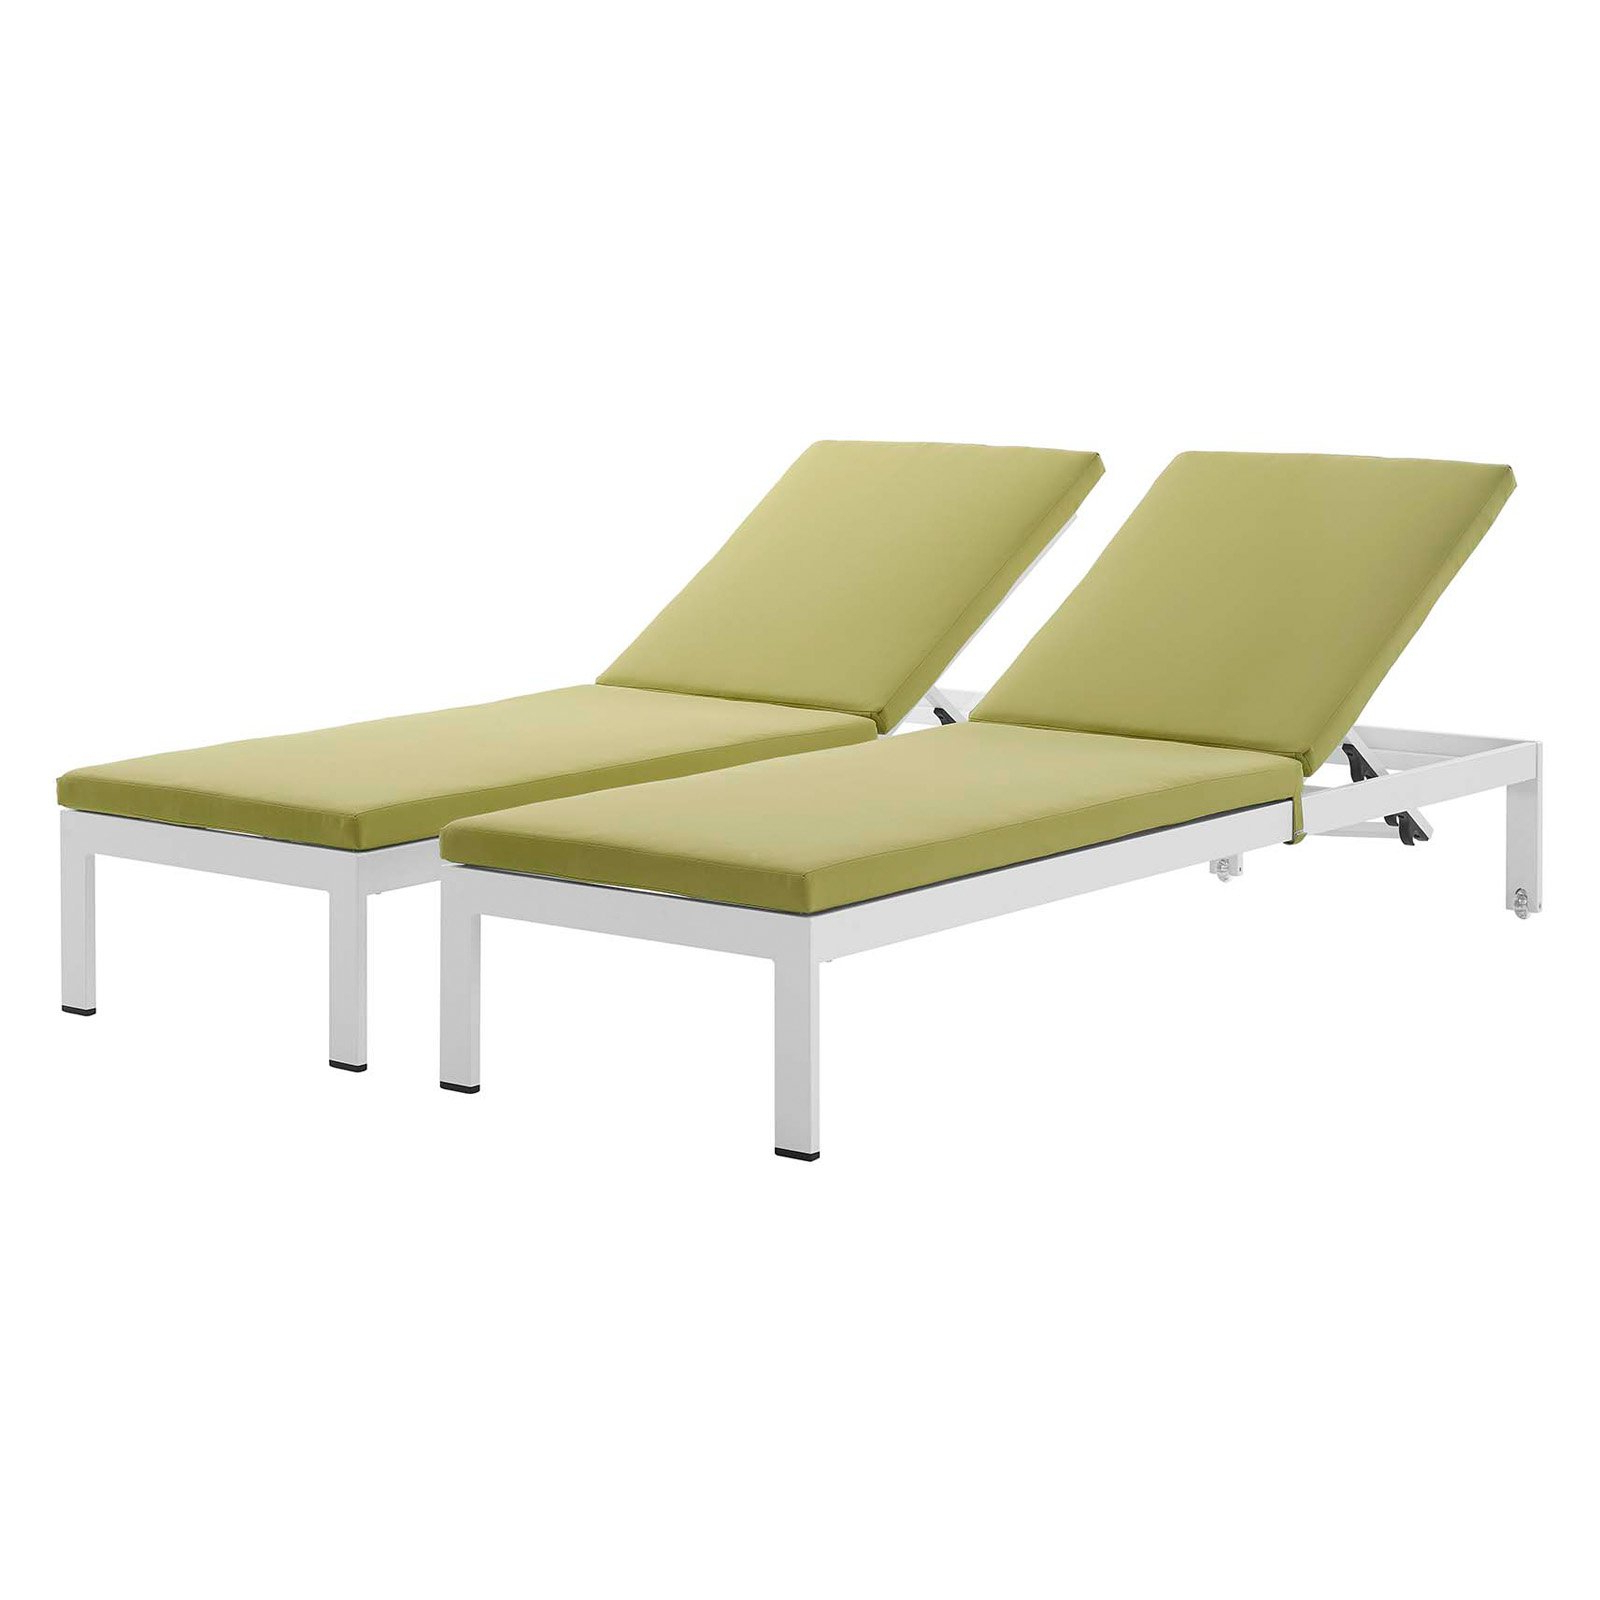 Well Liked Modway Shore Aluminum Outdoor Patio Chaise Lounge Chair Inside Shore Aluminum Outdoor Chaise Lounges (View 24 of 25)